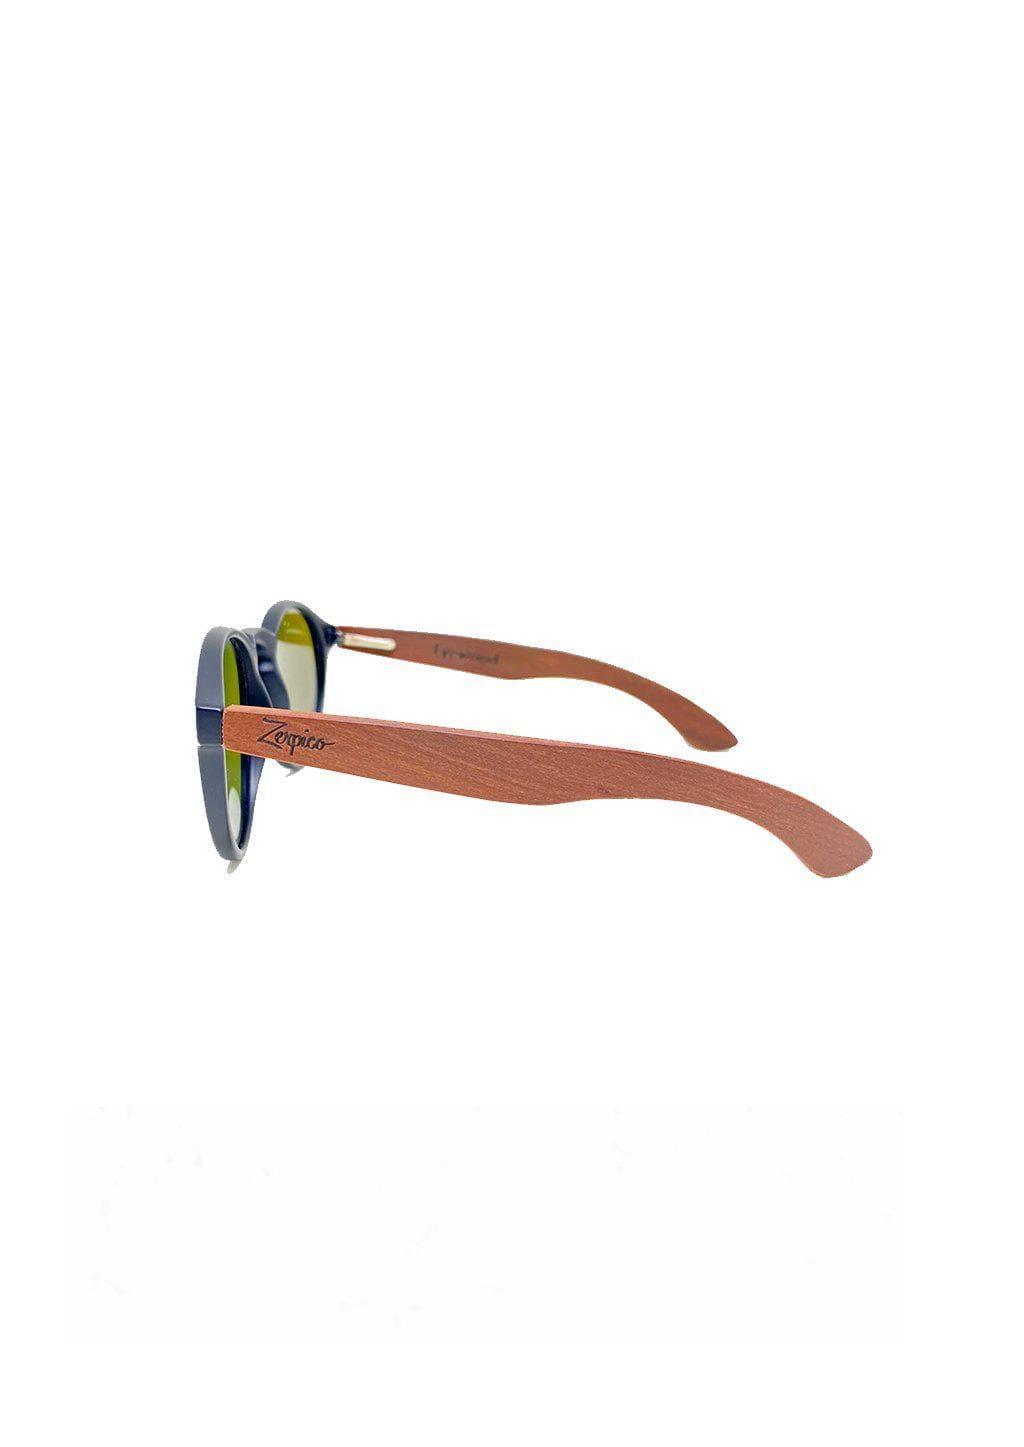 Eyewood Cubs - Lilo - Wooden sunglasses for kids and toddlers. From the side.